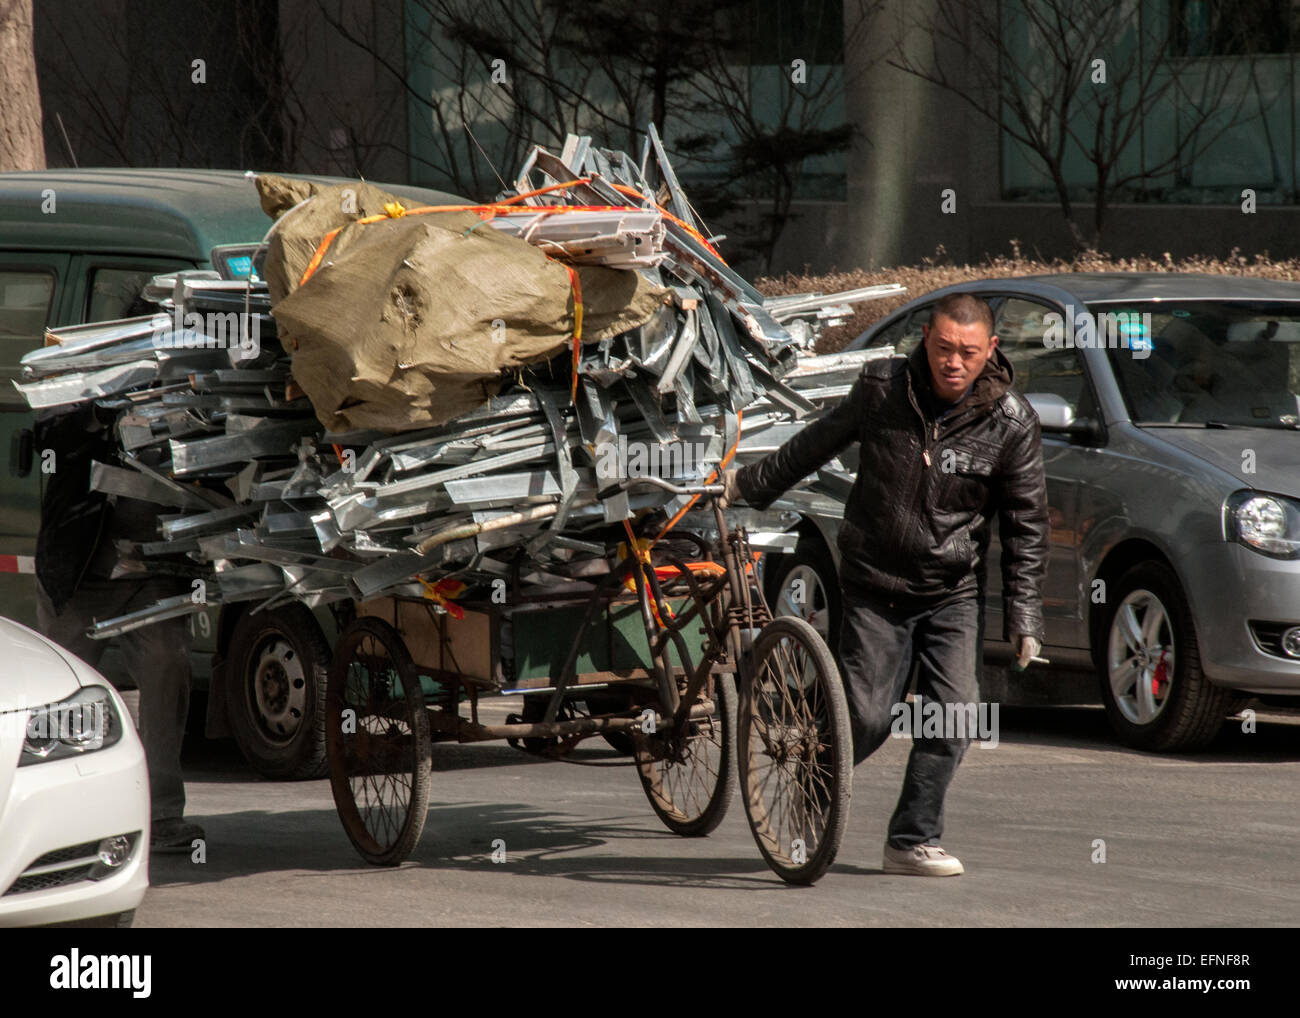 Transporting Junk,  Dalion China - Stock Image